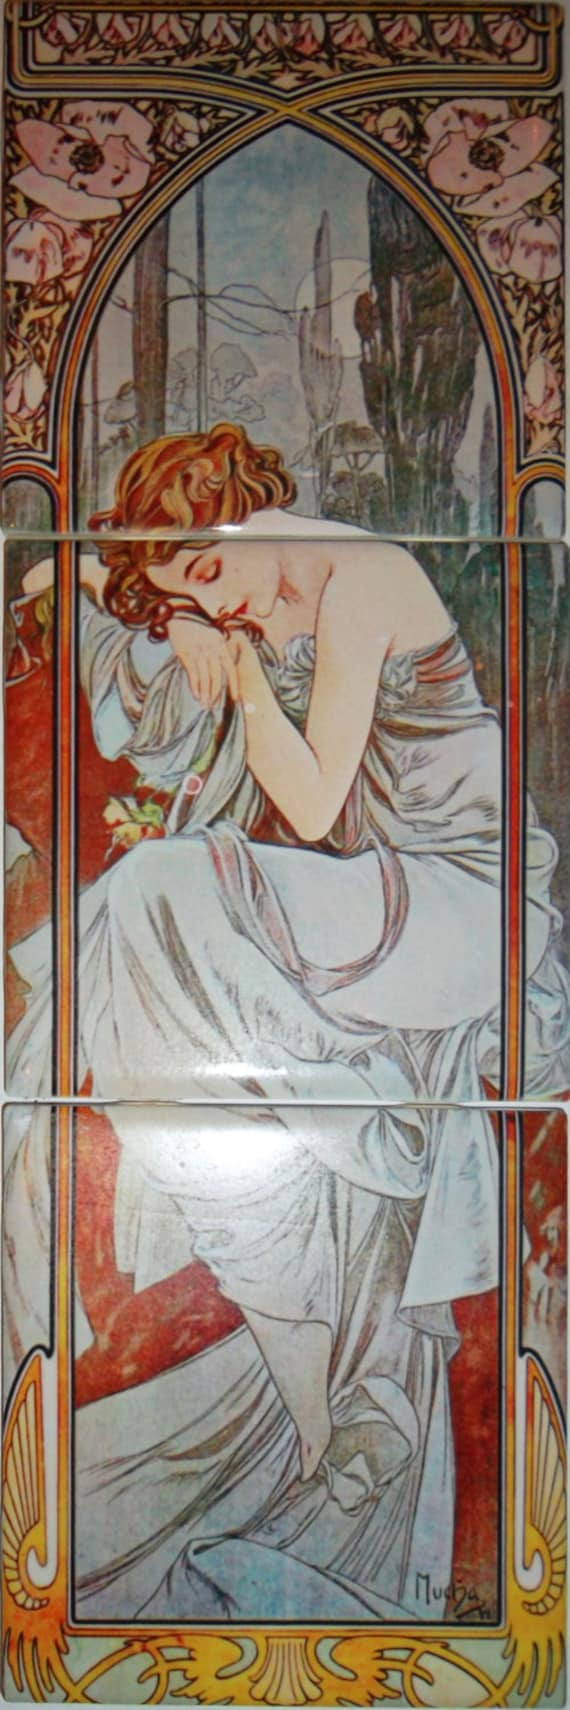 Ceramic tile mural art nouveau ceramic tile decorative mini for Art nouveau mural